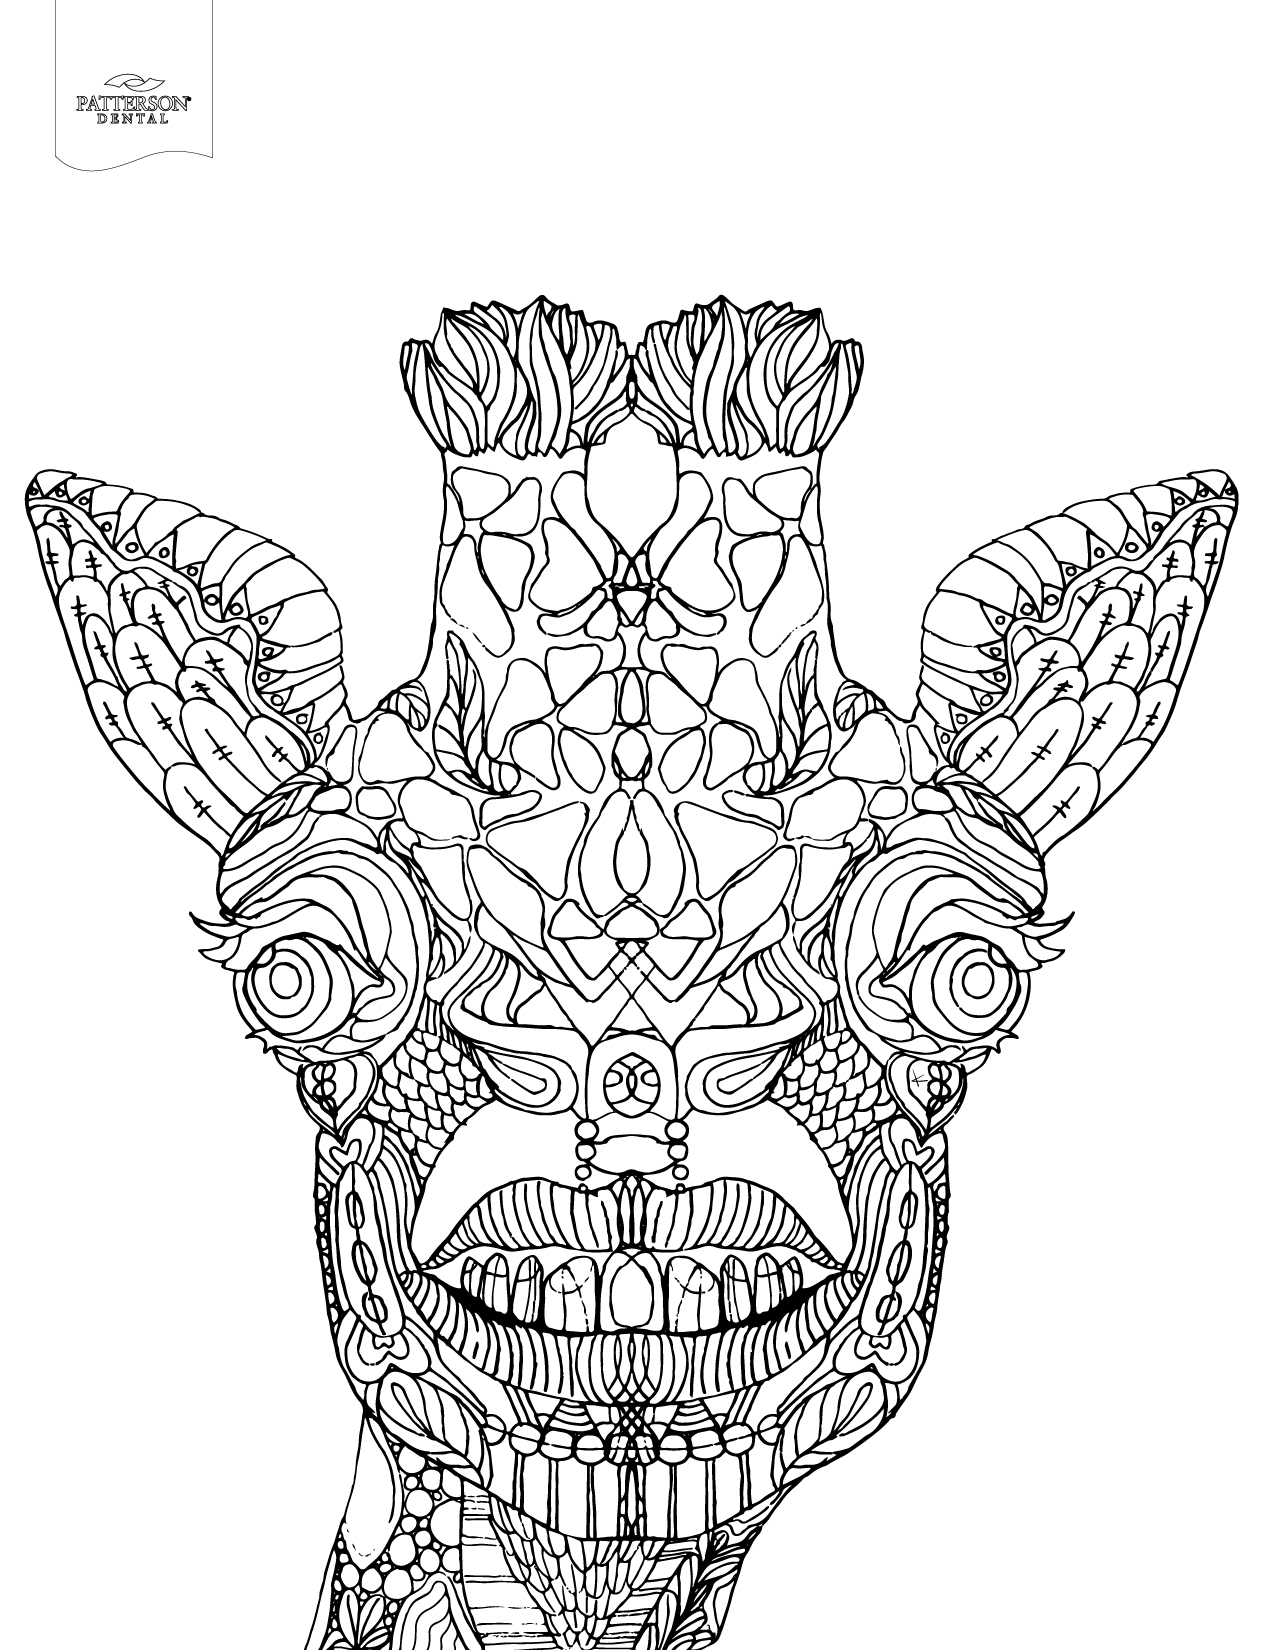 coloring papers 10 toothy adult coloring pages printable off the cusp coloring papers